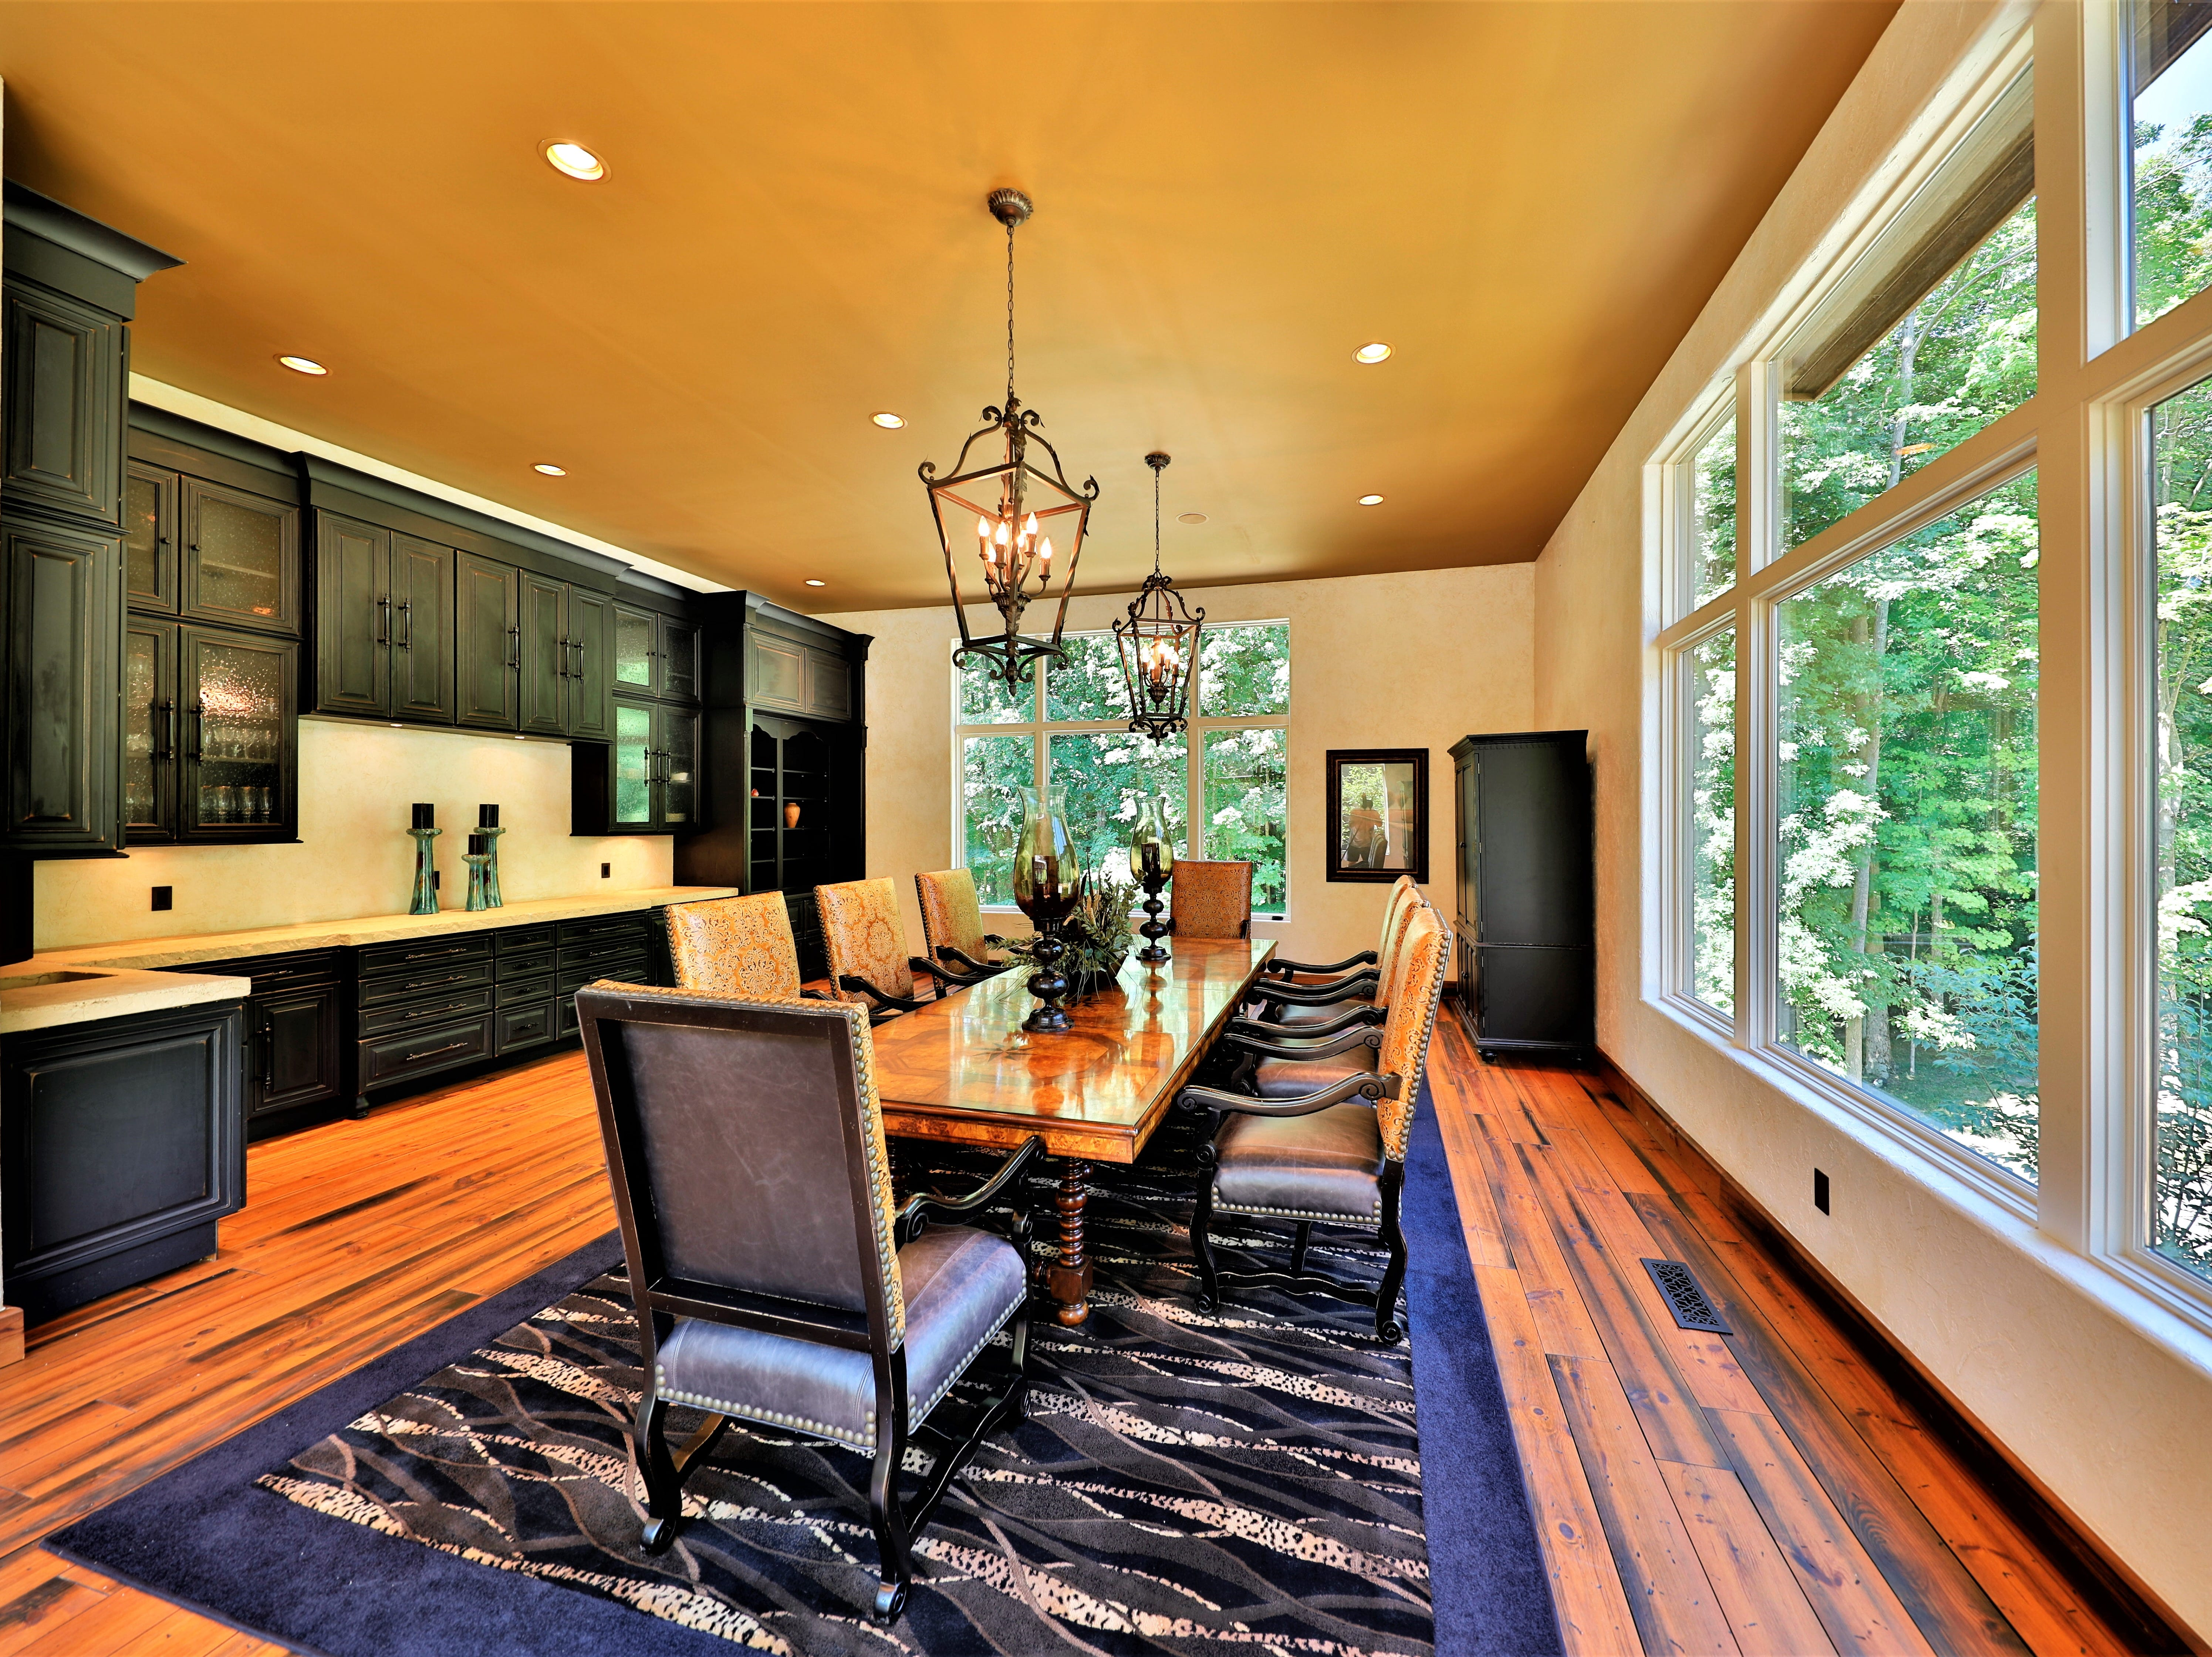 At the front of the house on the main floor is a conference room, complete with a wet bar.